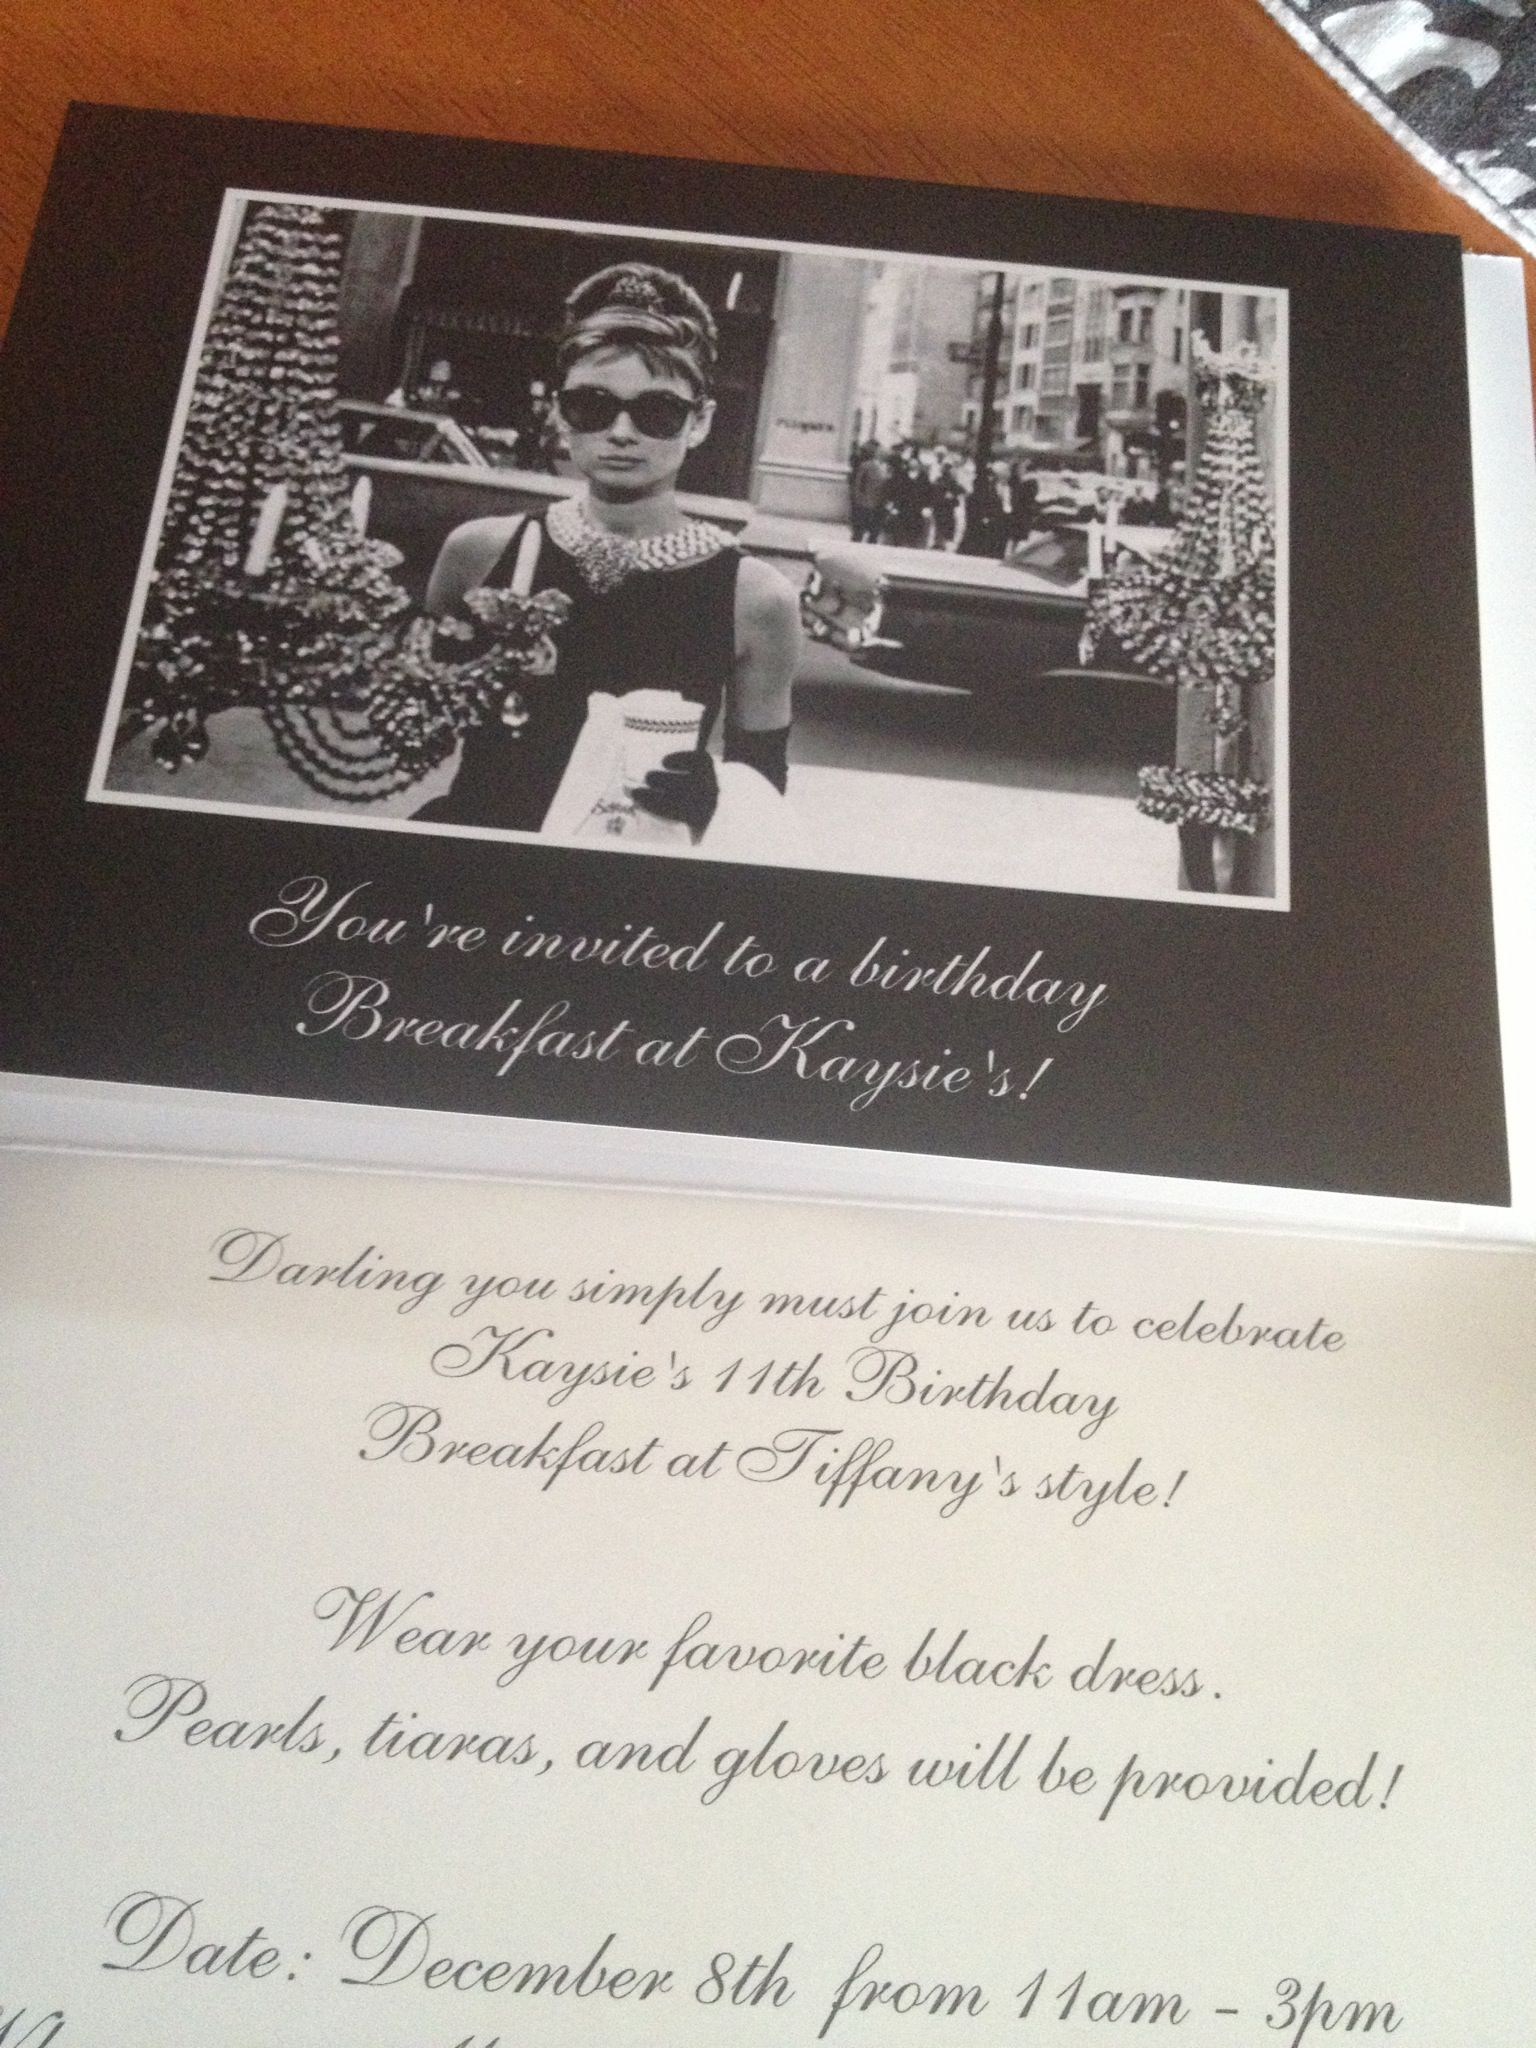 Breakfast At Tiffany S Theme Birthday Party Invitations Shutterfly